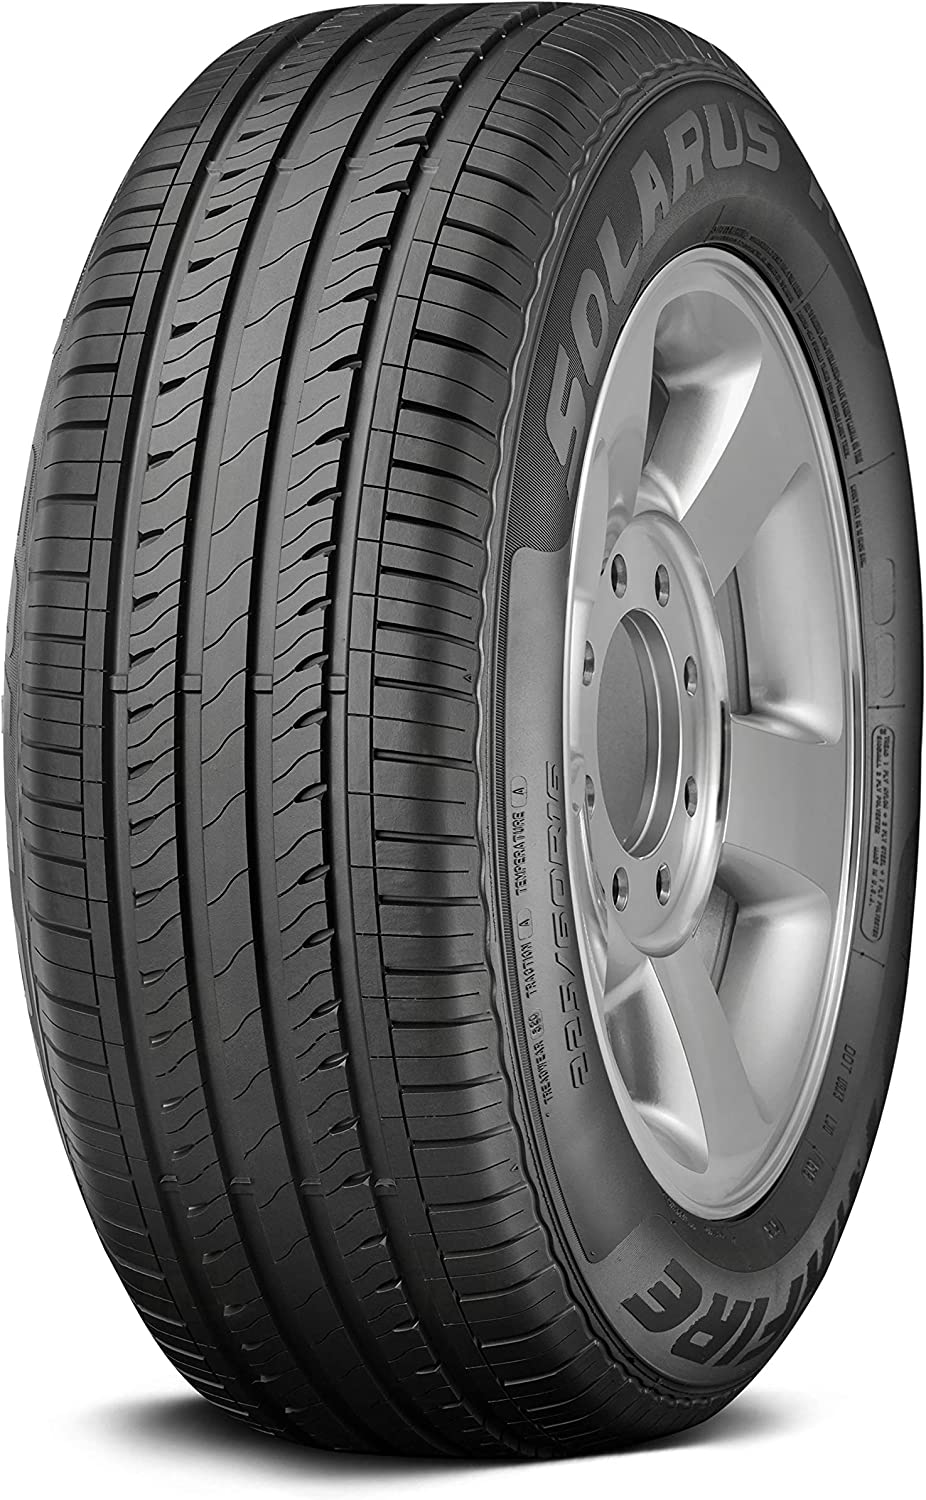 Starfire Solarus AS Performance Tire 225//45R18 95V